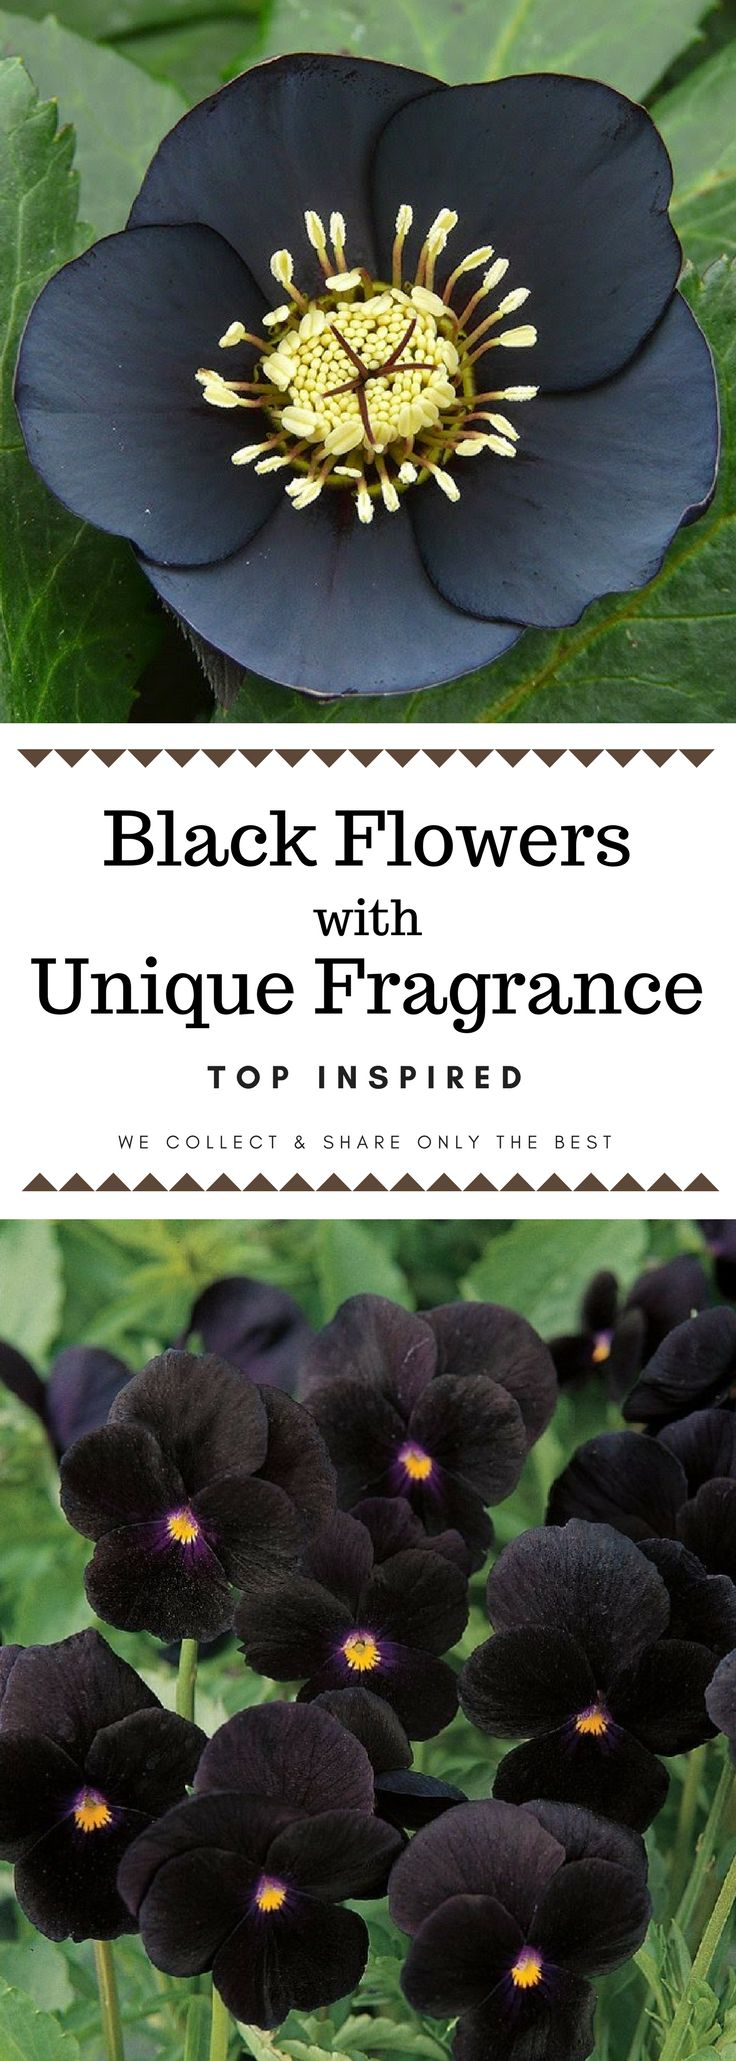 Take a look at these 10 black plants and flowers we have chosen as most suitable for adding a dark touch to your garden and choose your favorites.